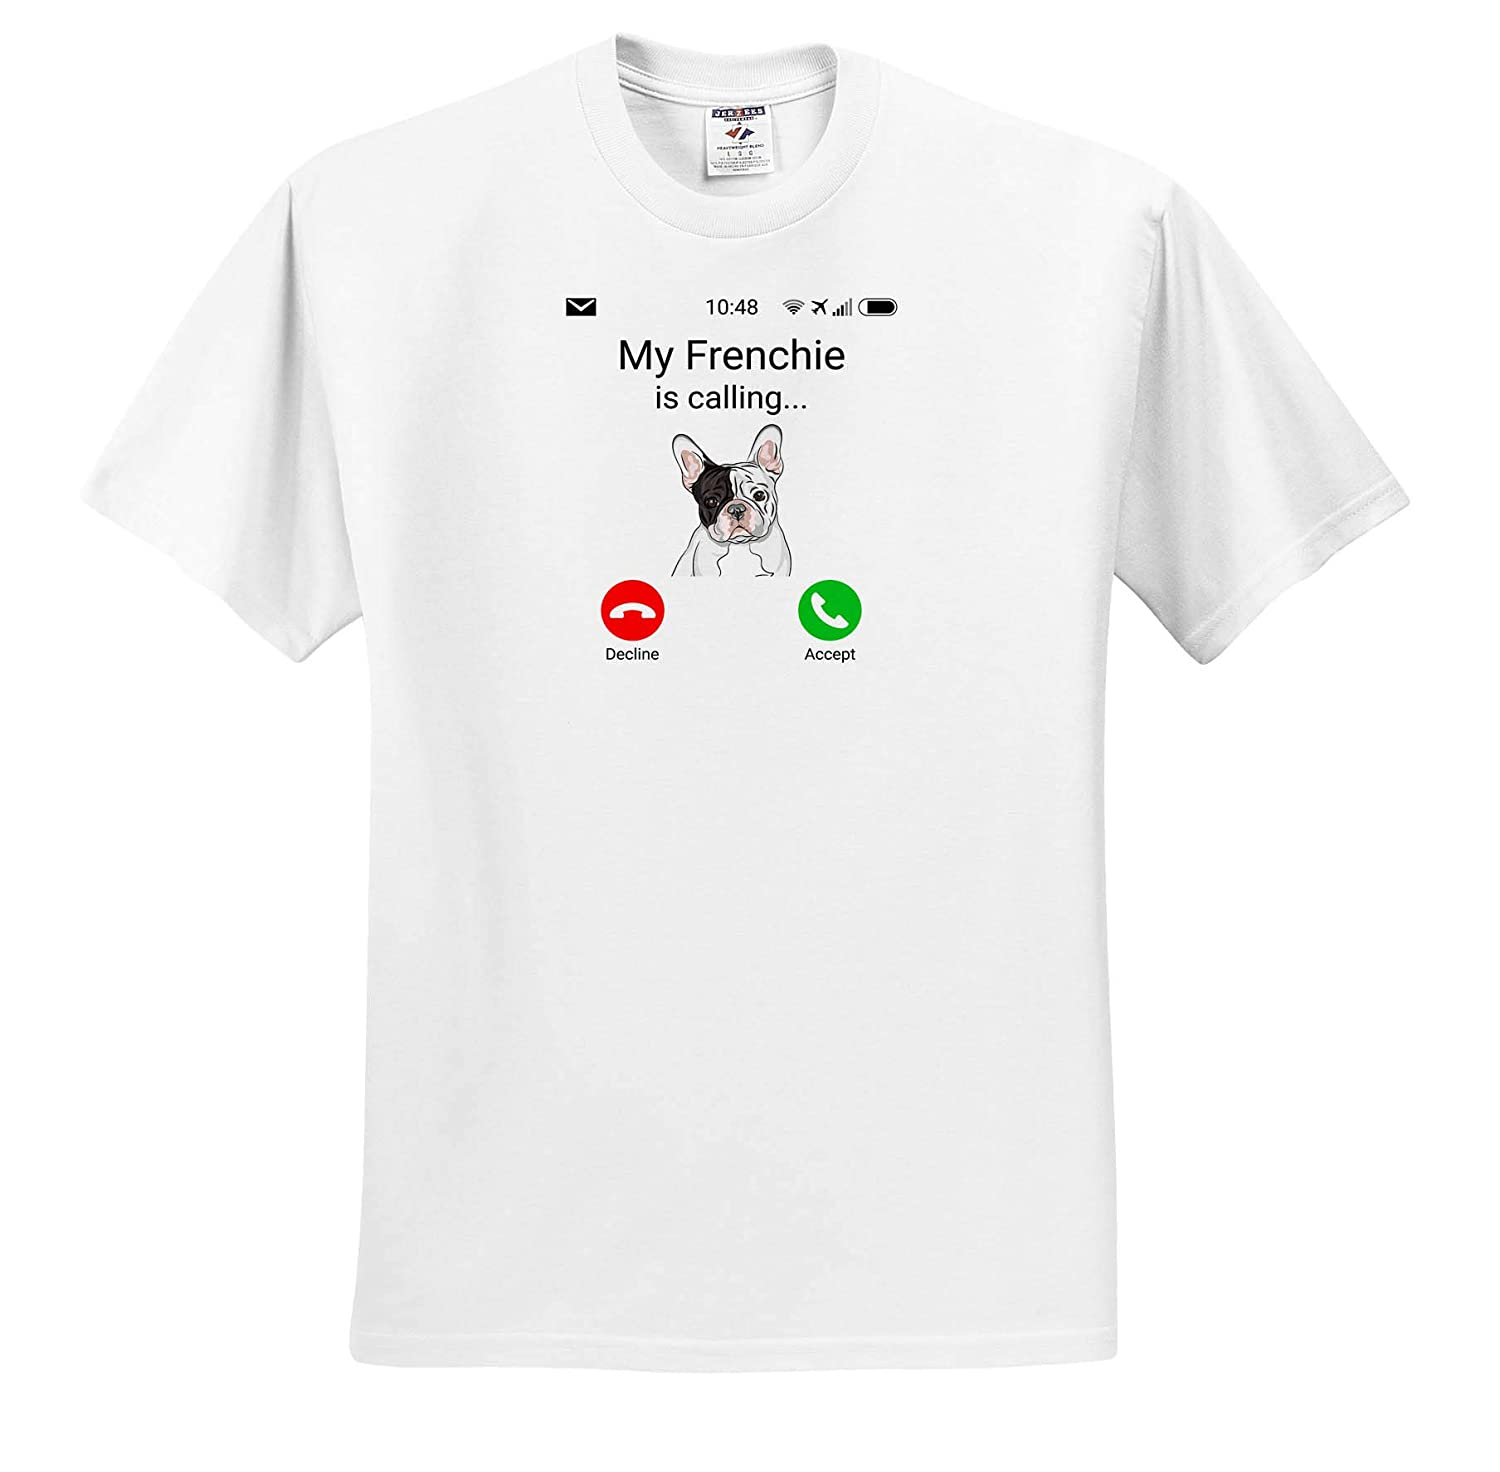 My Frenchie is Calling Funny Incoming Phone Call Adult T-Shirt XL 3dRose Carsten Reisinger Illustrations ts/_316054